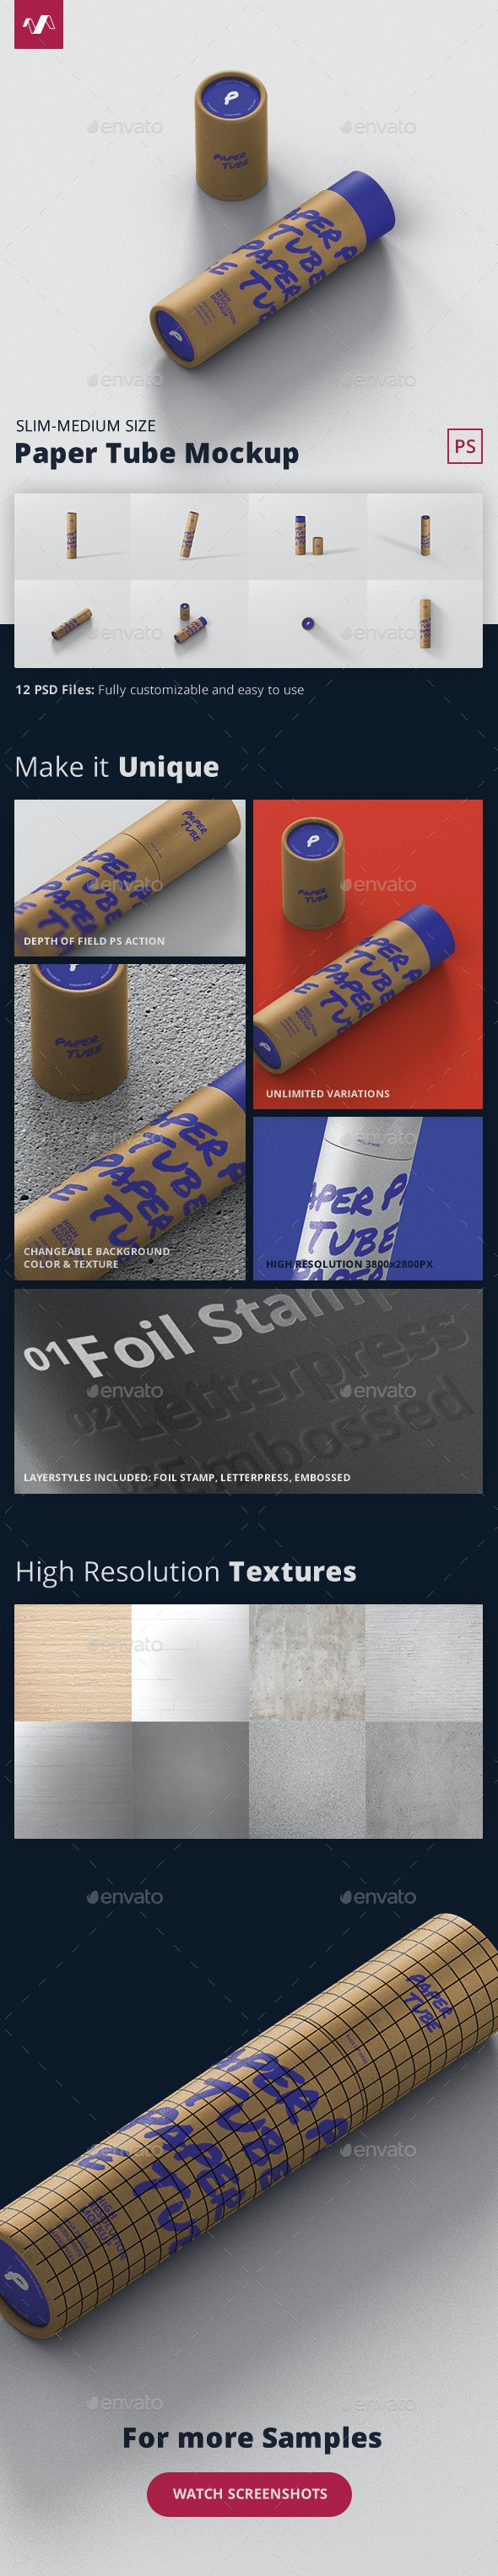 Paper Tube Mockup - Slim Medium Size - Miscellaneous Packaging